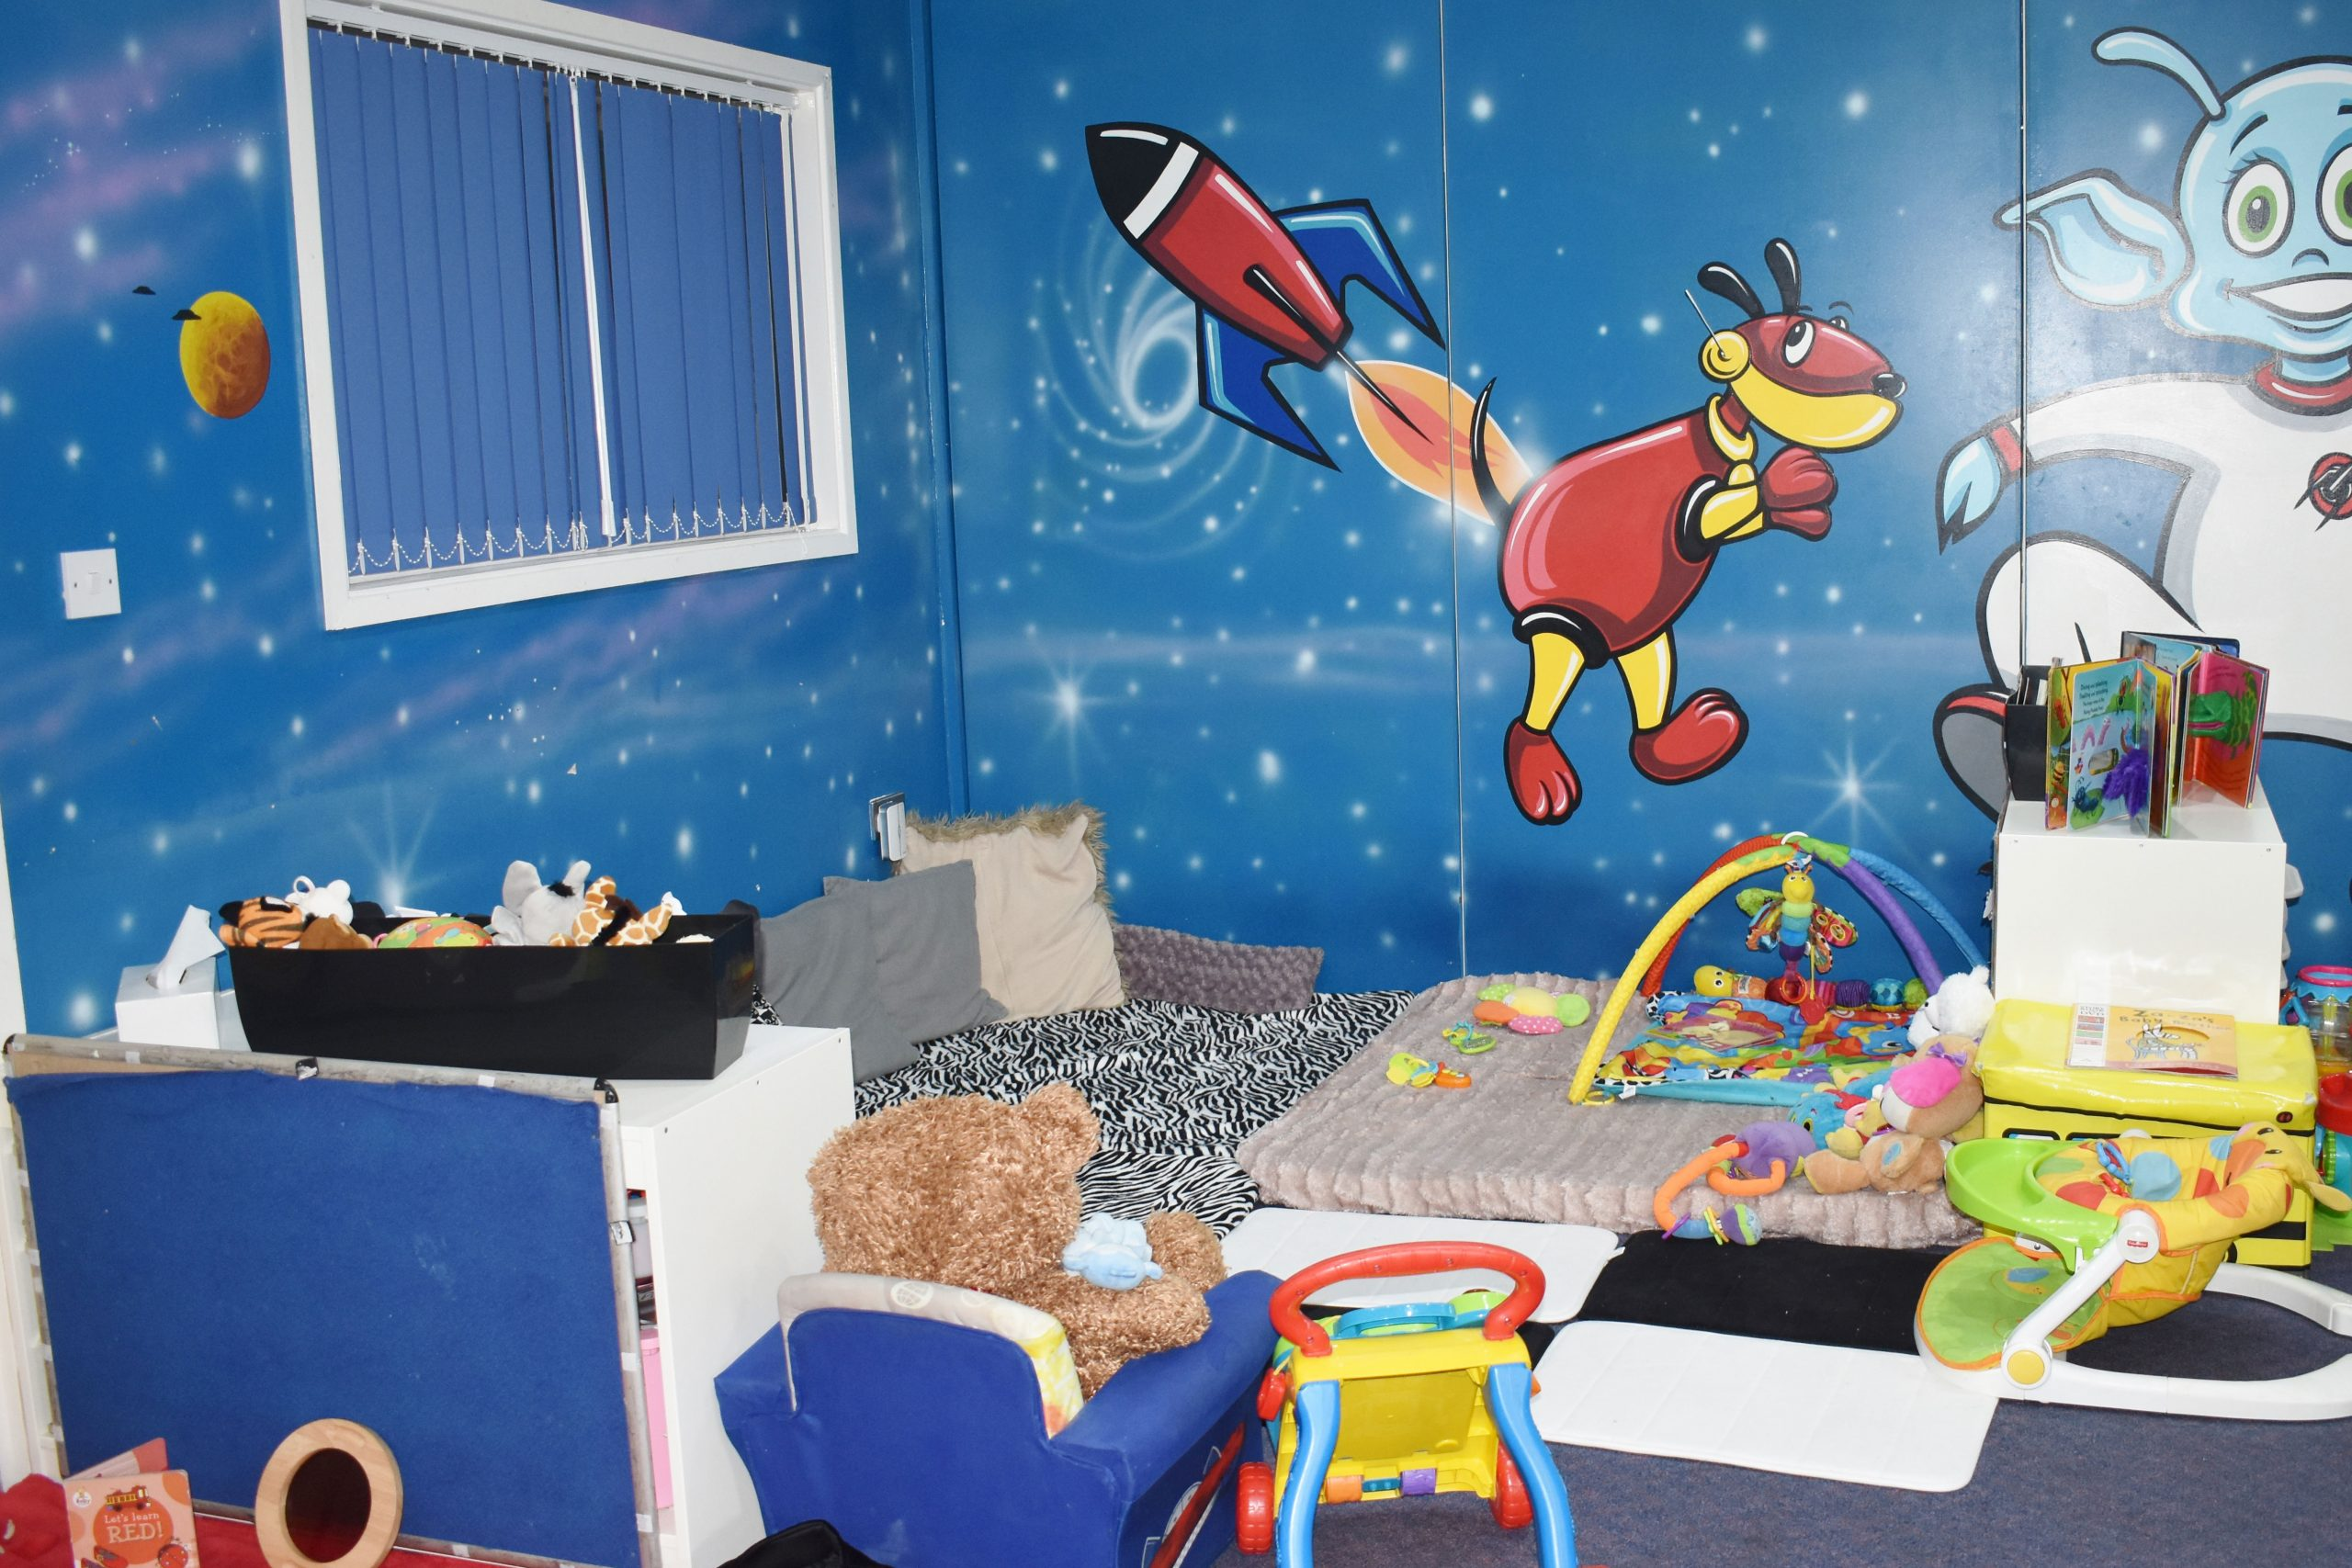 under 2's play room